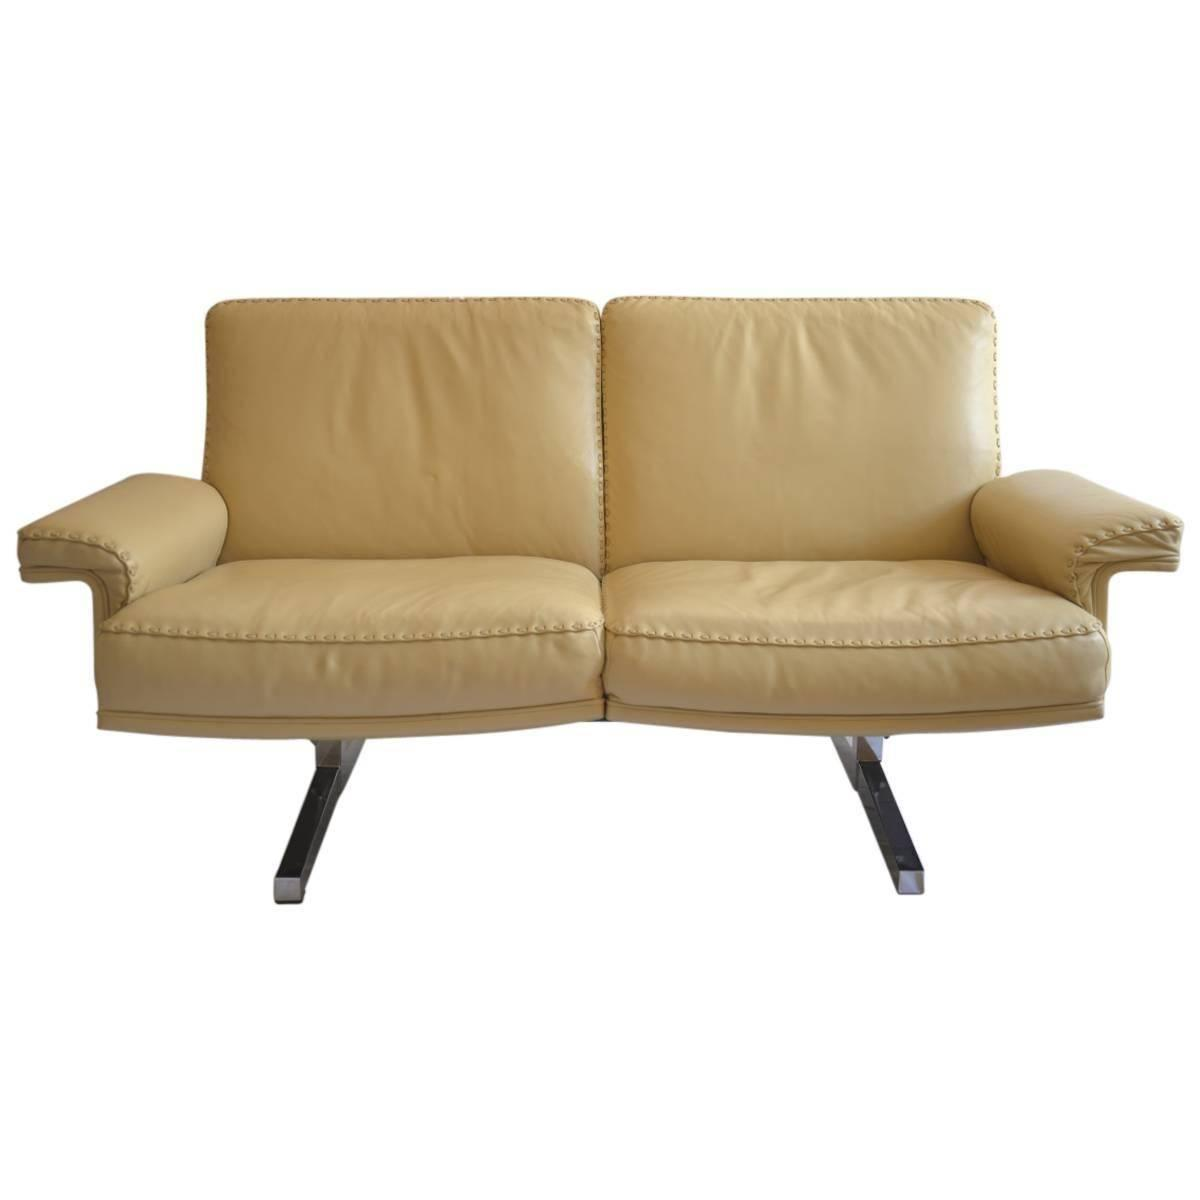 Vintage De Sede Ds 35 Two Seat Loveseat And Swivel Armchair 1970s For Sale At 1stdibs